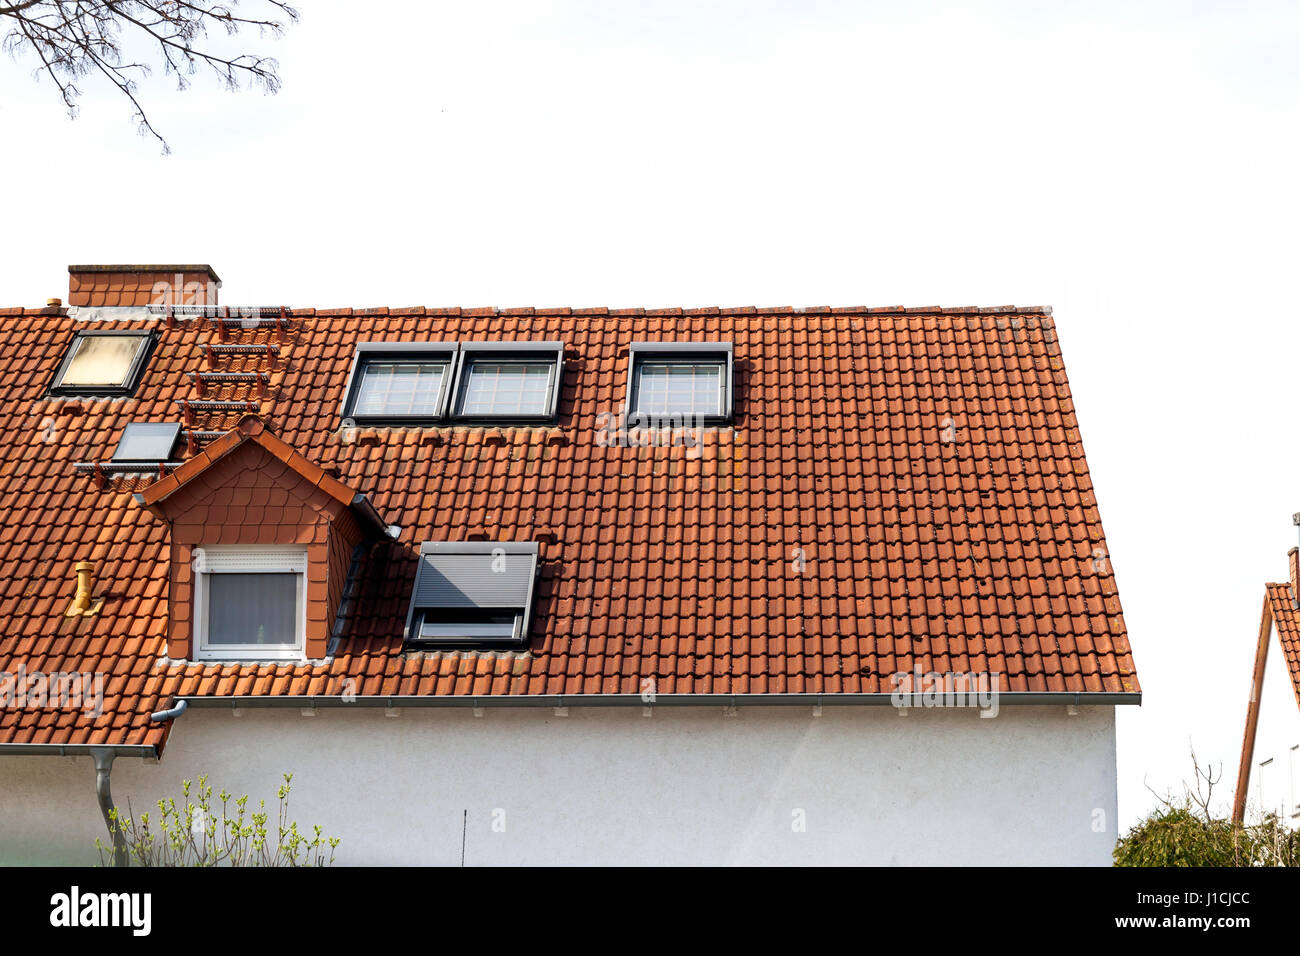 https www alamy com stock photo roof of classic residential houses with orange roofing tiles and windows 138575484 html